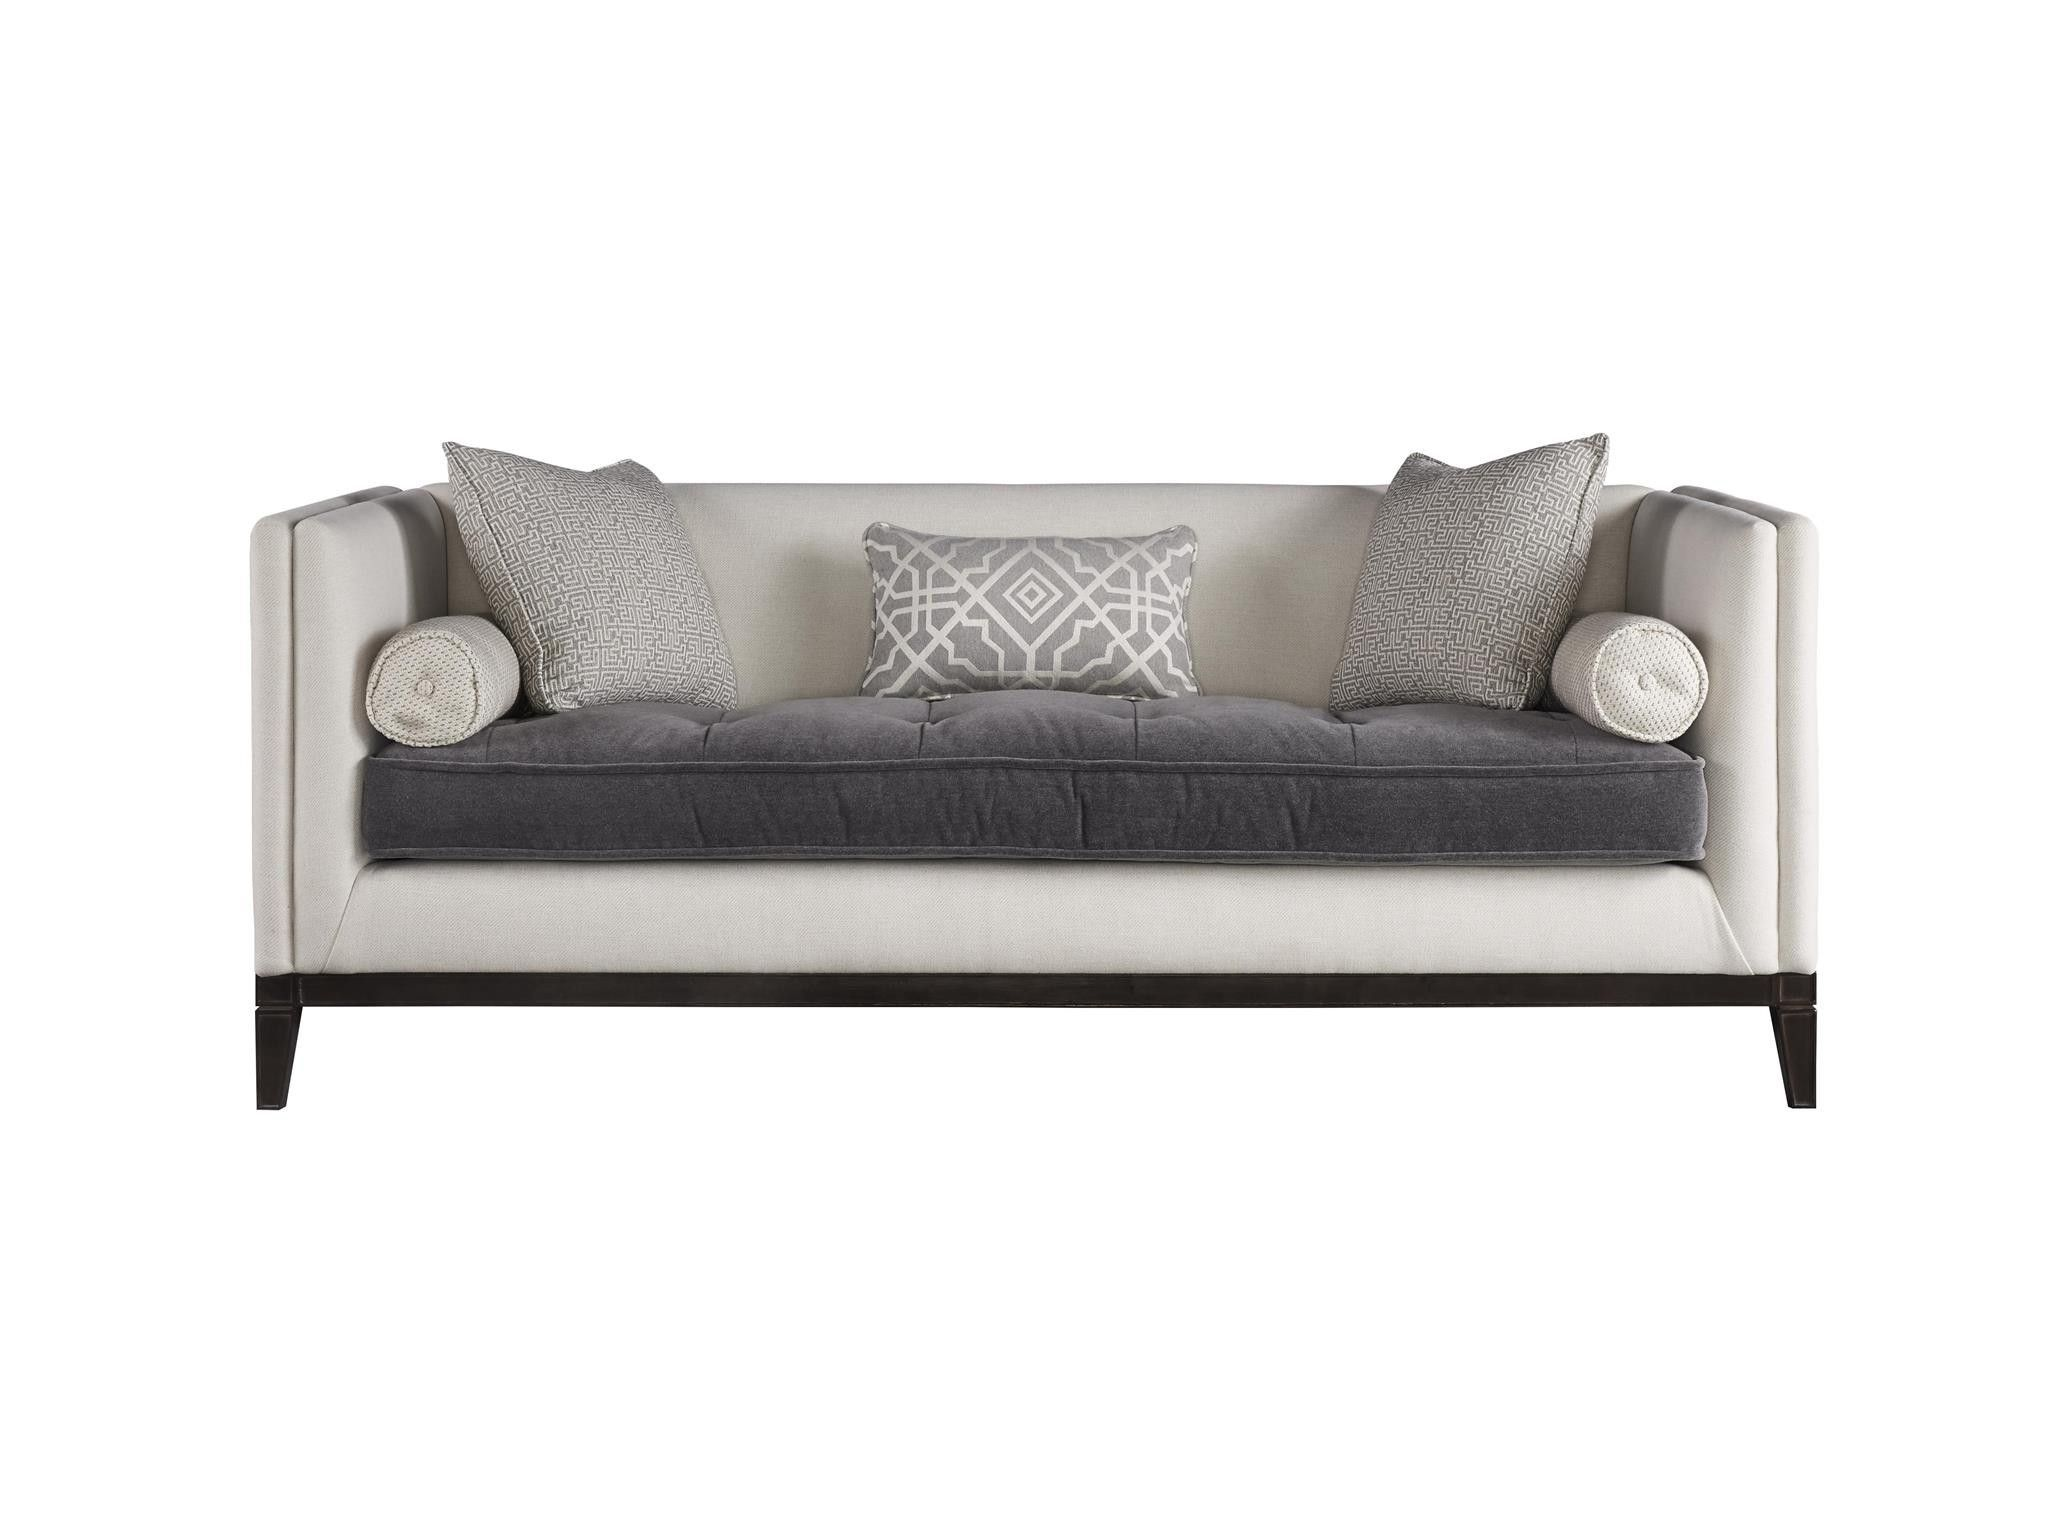 Sofa 1432560 From Lillian August Furnishings Design In 2020